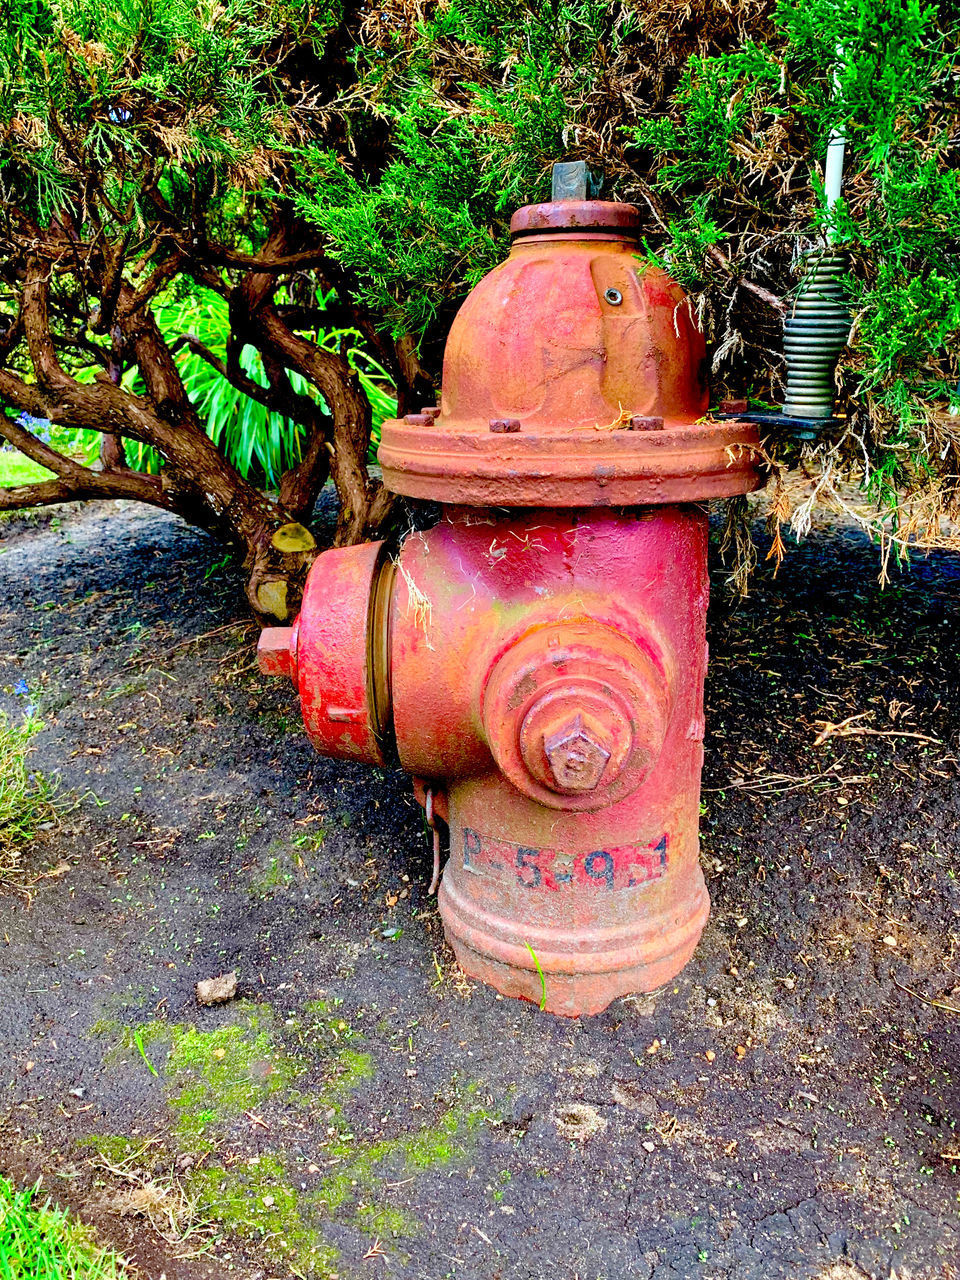 ABANDONED FIRE HYDRANT ON FIELD